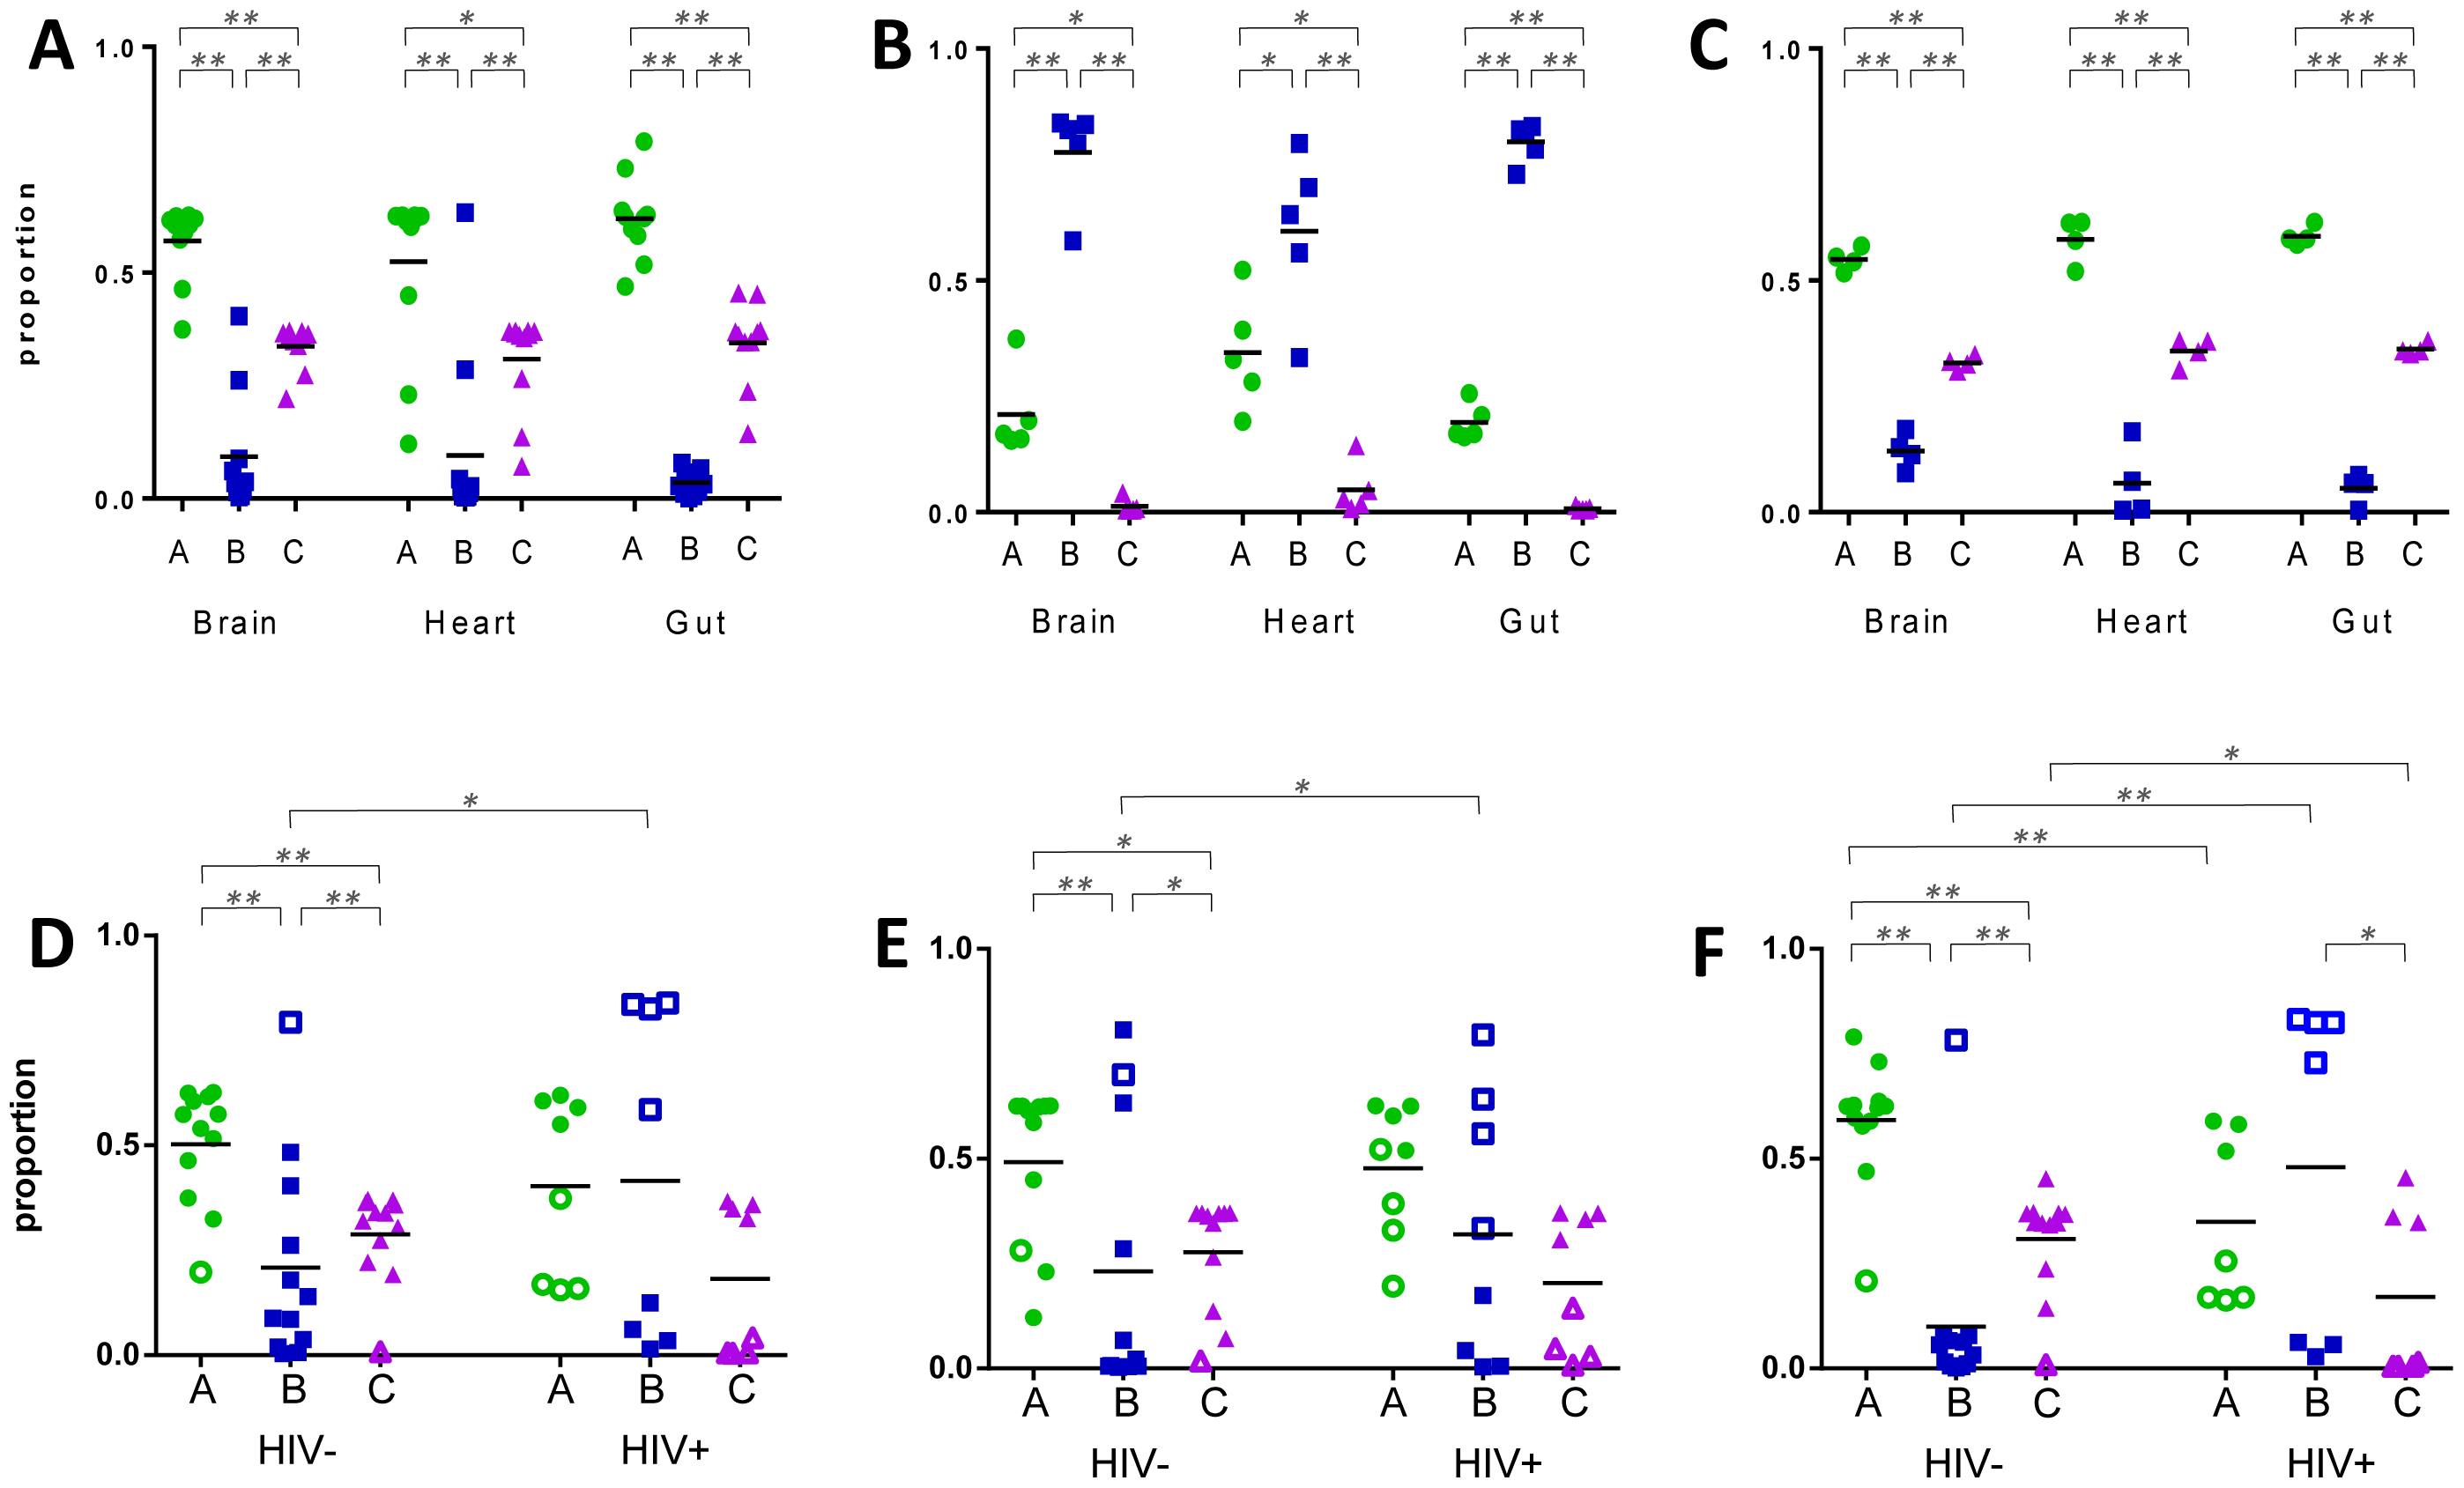 Expression of <i>var</i> gene groups in the organs of paediatric hosts.